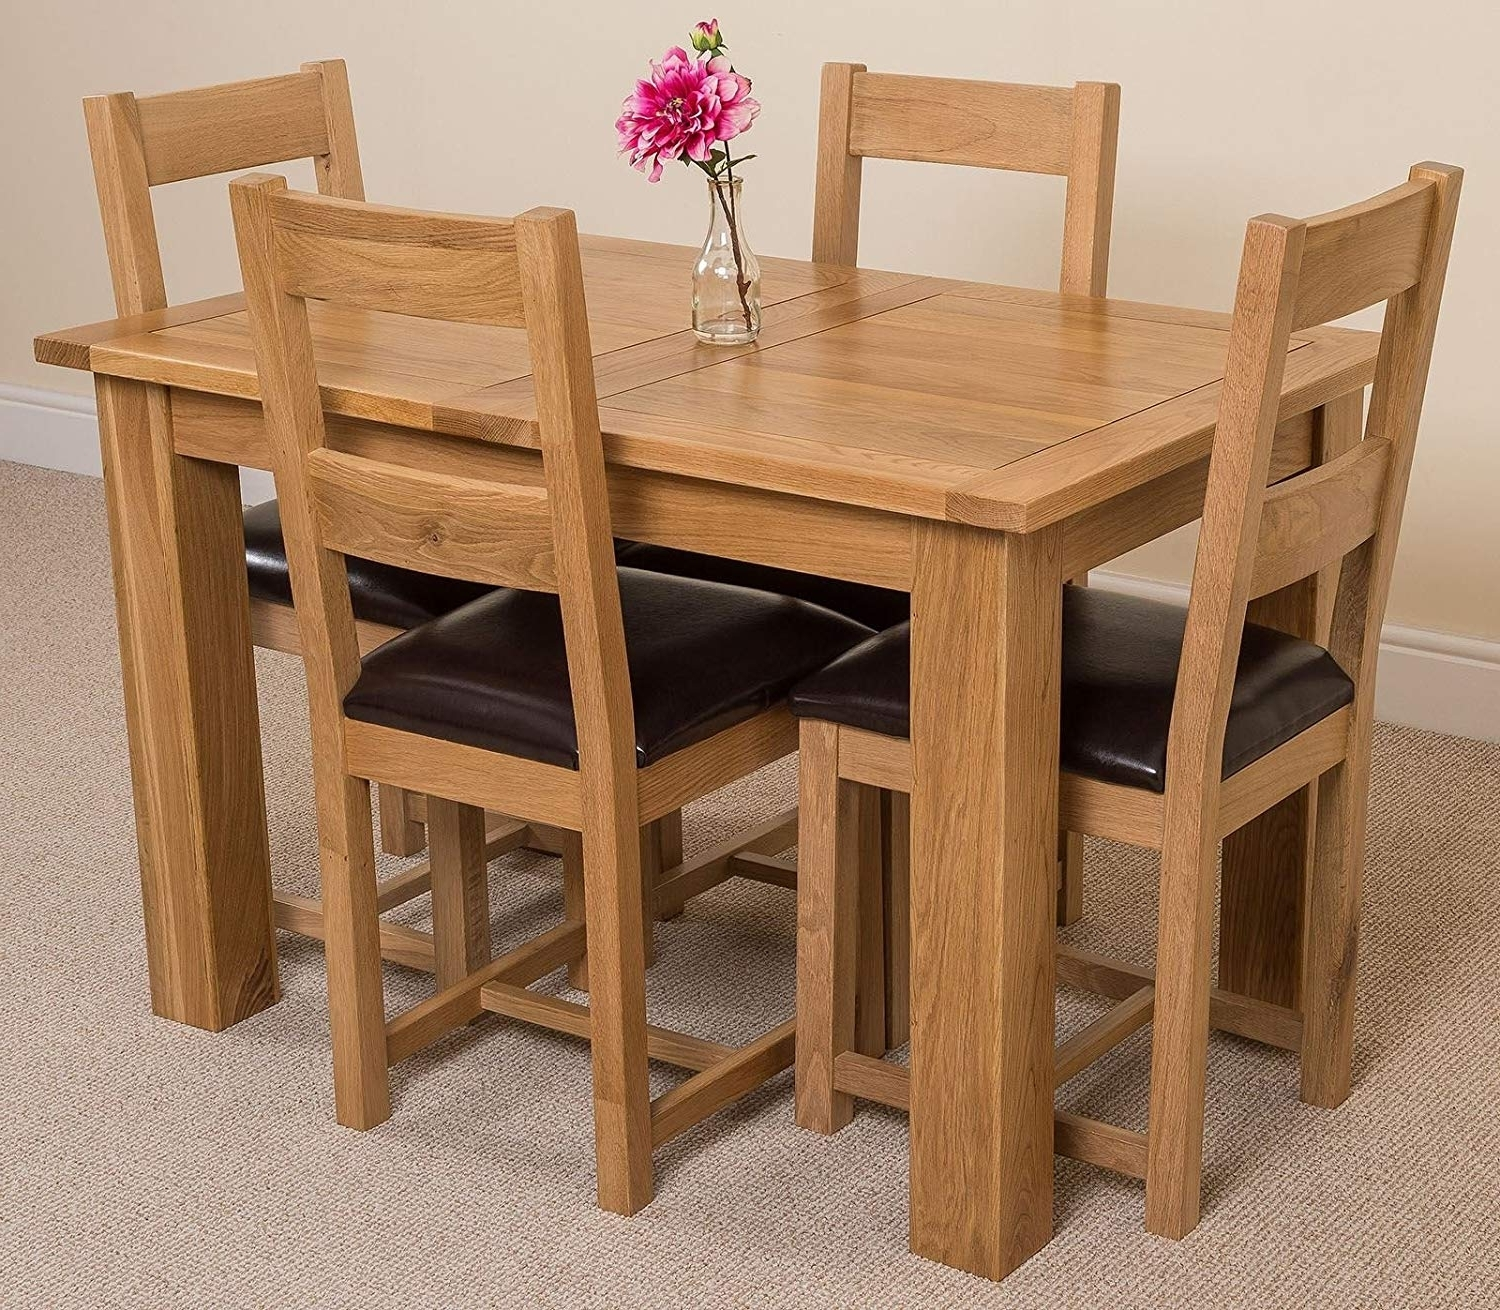 Hampton Solid Oak (120 160 Cm) Extending Dining Table & 4 Lincoln Regarding Widely Used Oak Extendable Dining Tables And Chairs (View 2 of 25)